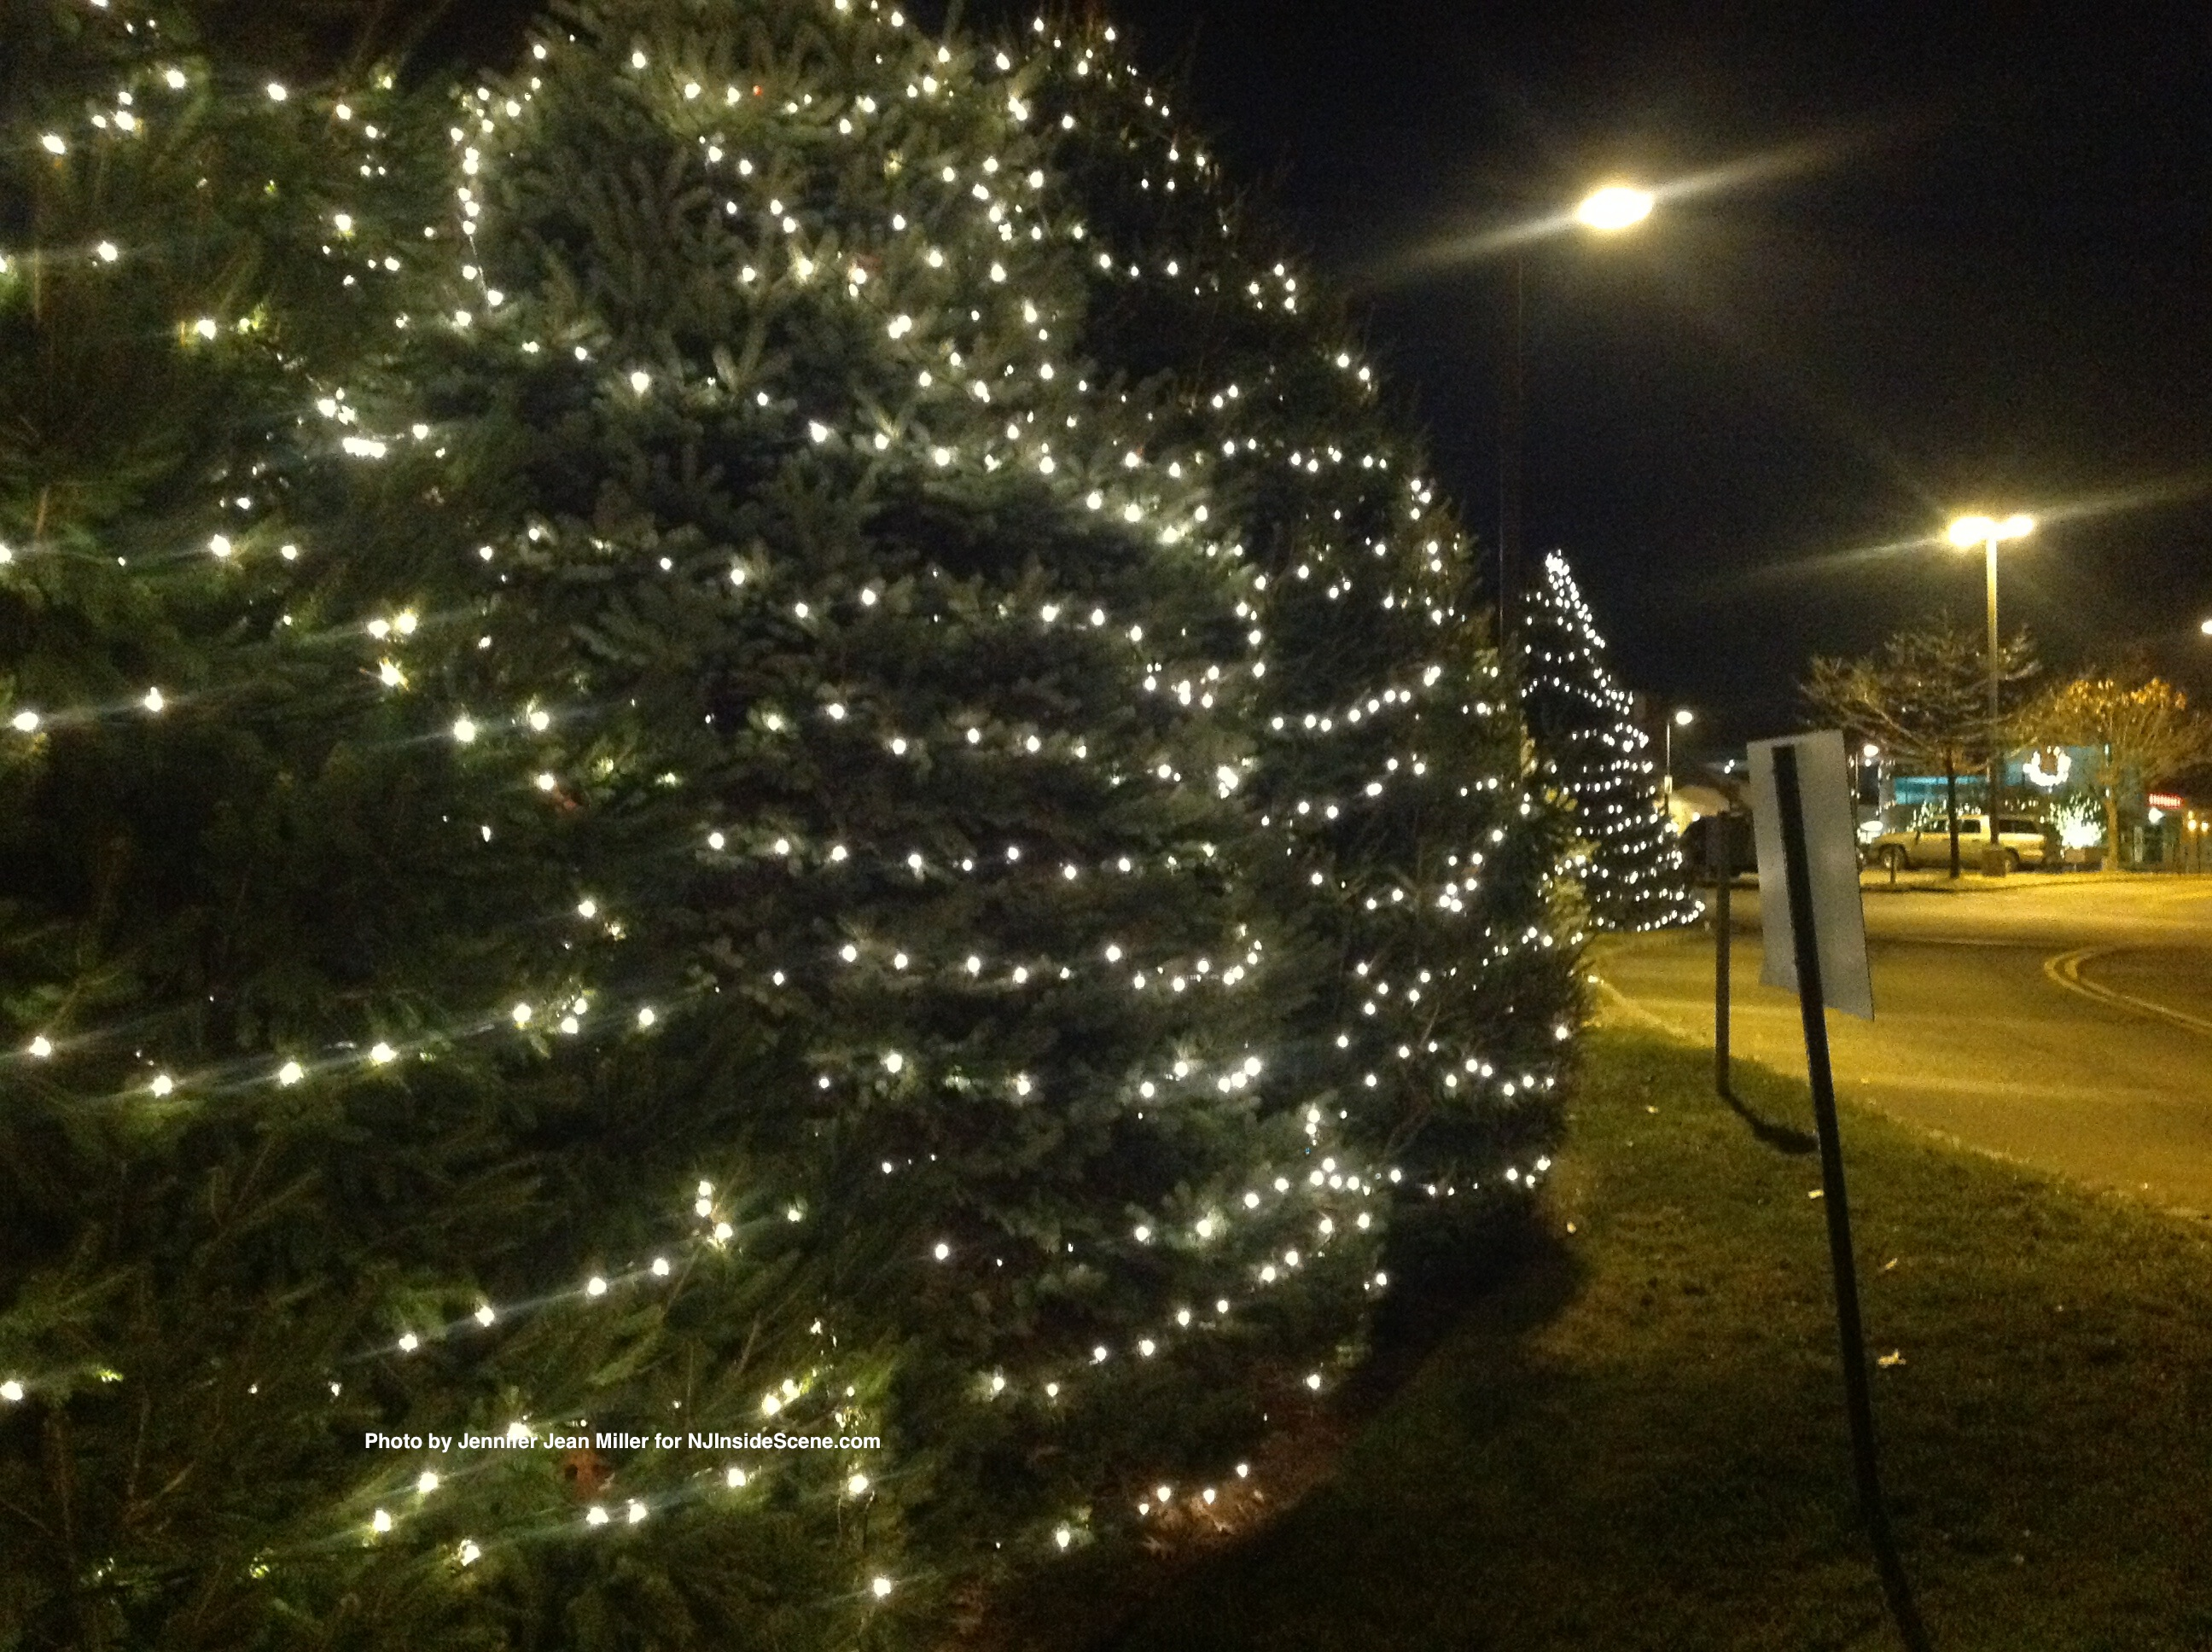 Trees aglow through the holidays at the Newton Medical Center.